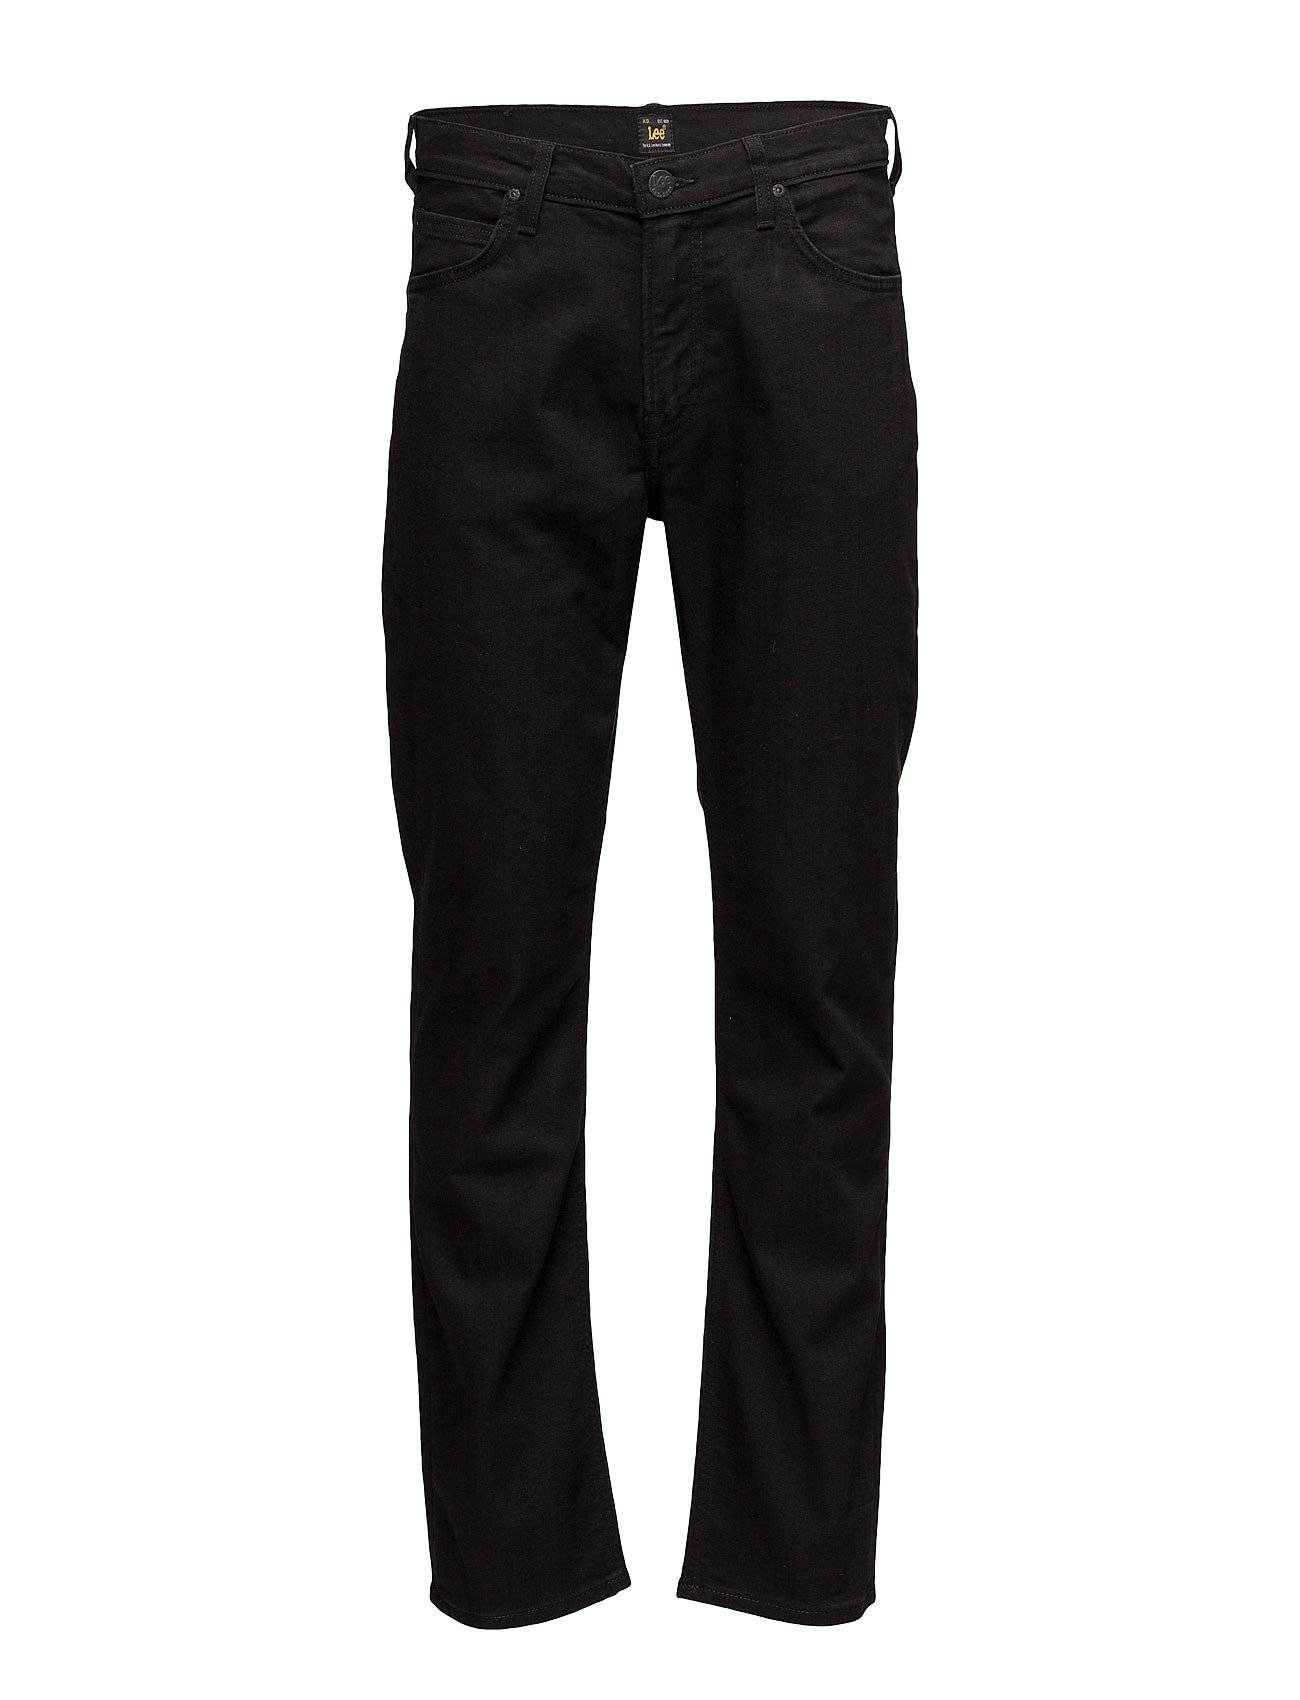 Lee Jeans Morton Black Rinse